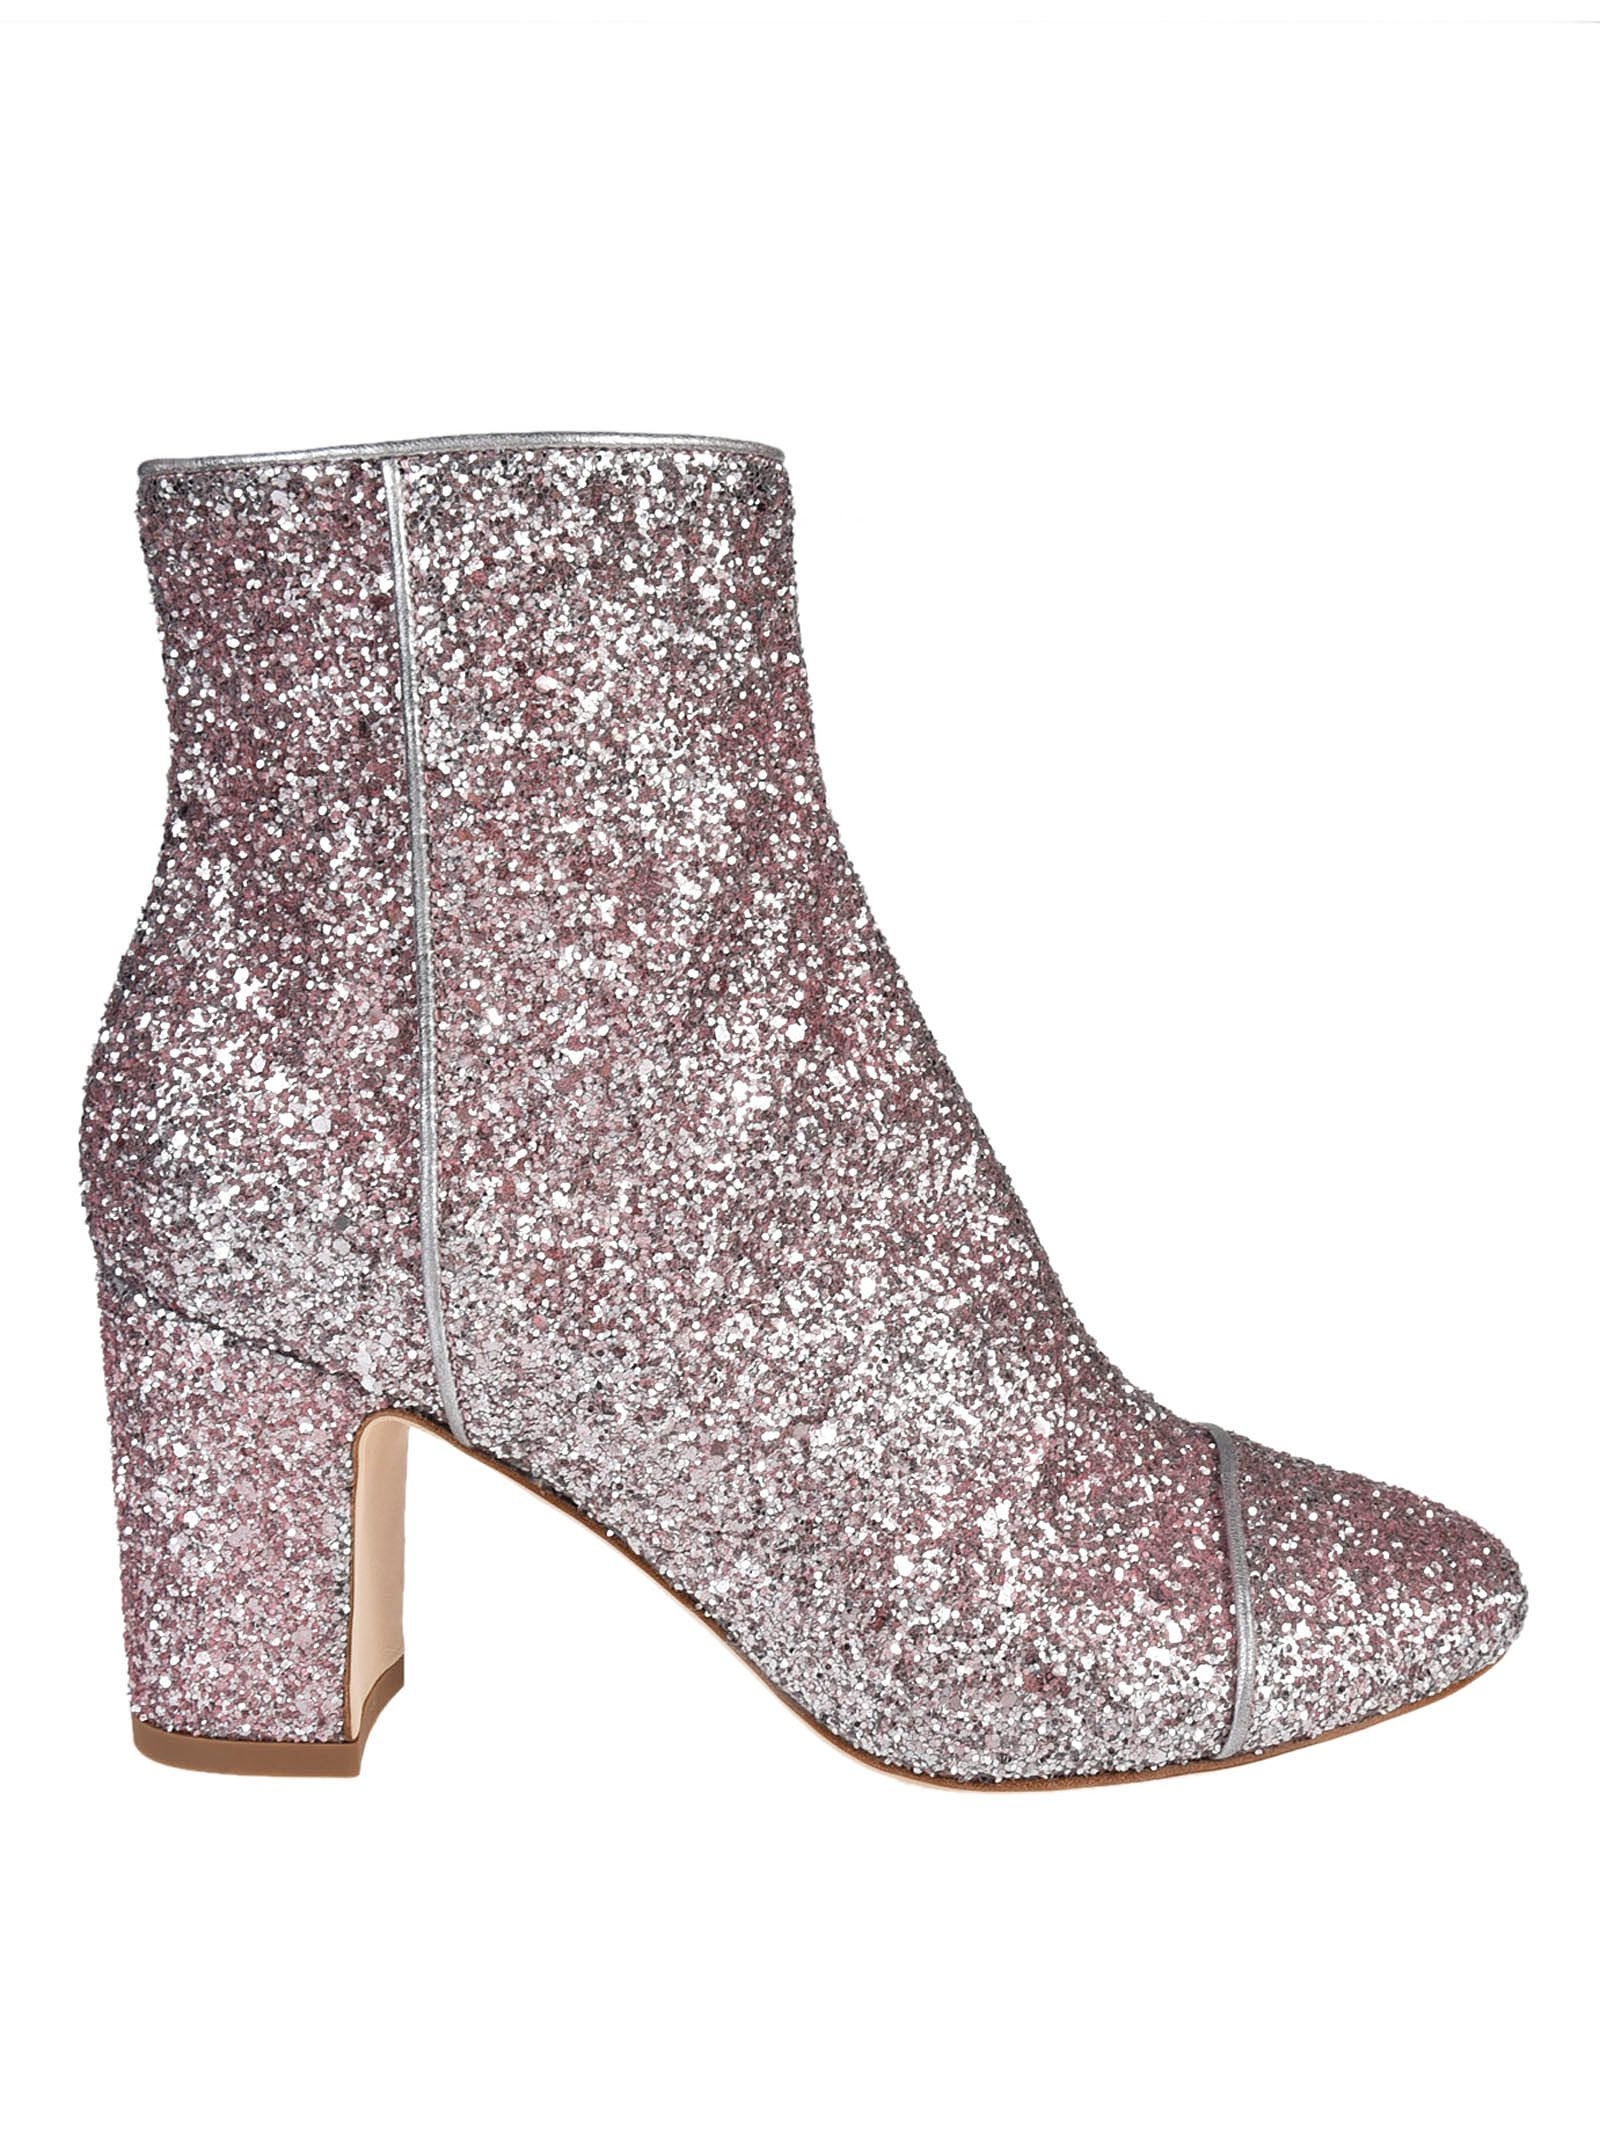 Polly Plume Lacquer Bootie 3BOab5O